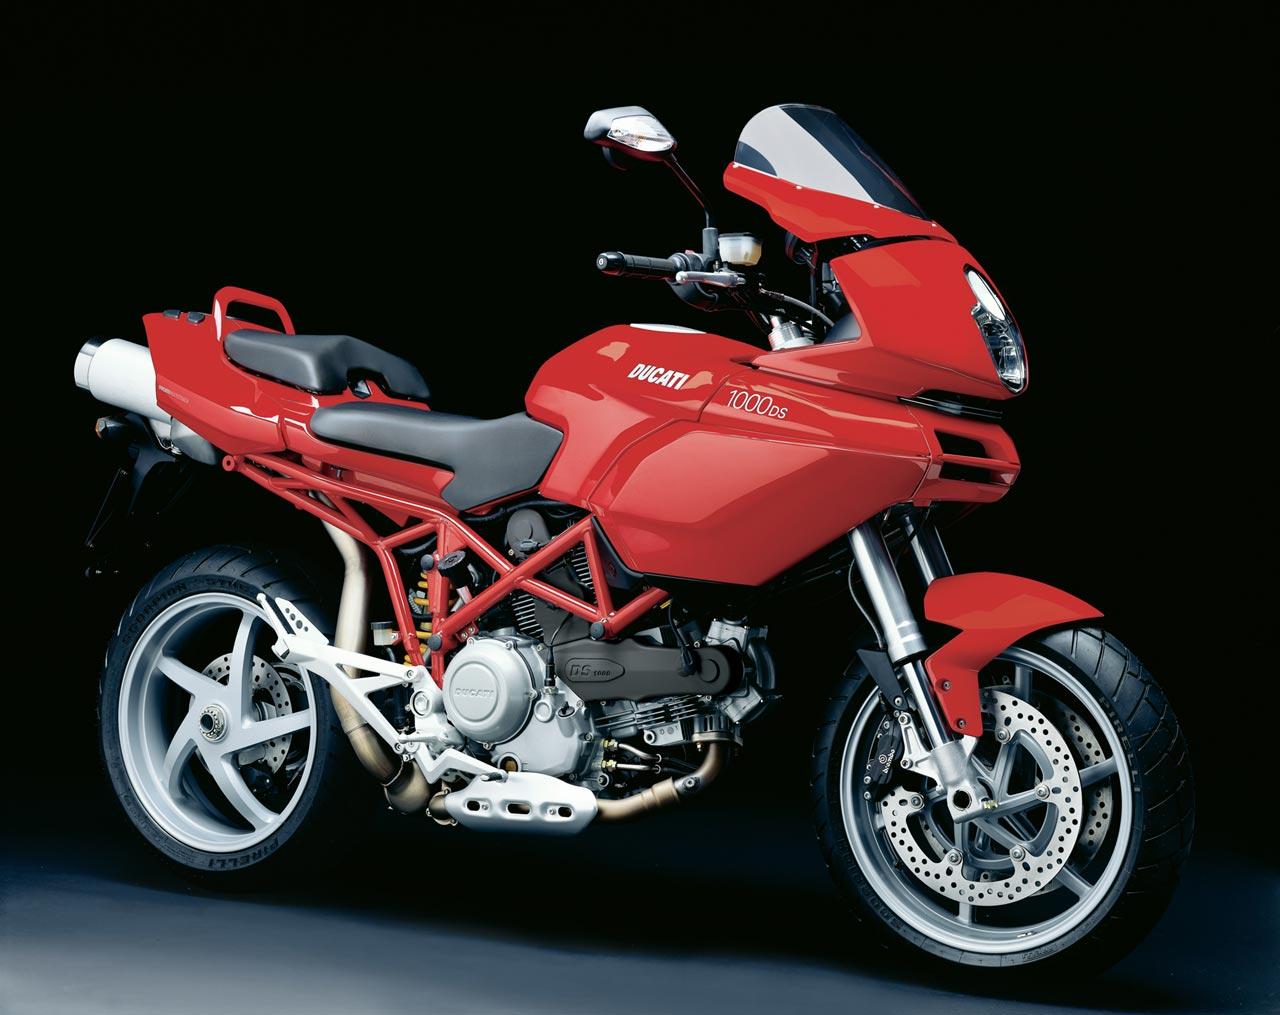 Ducati Multistrada 1000 DS 2006 images #79199